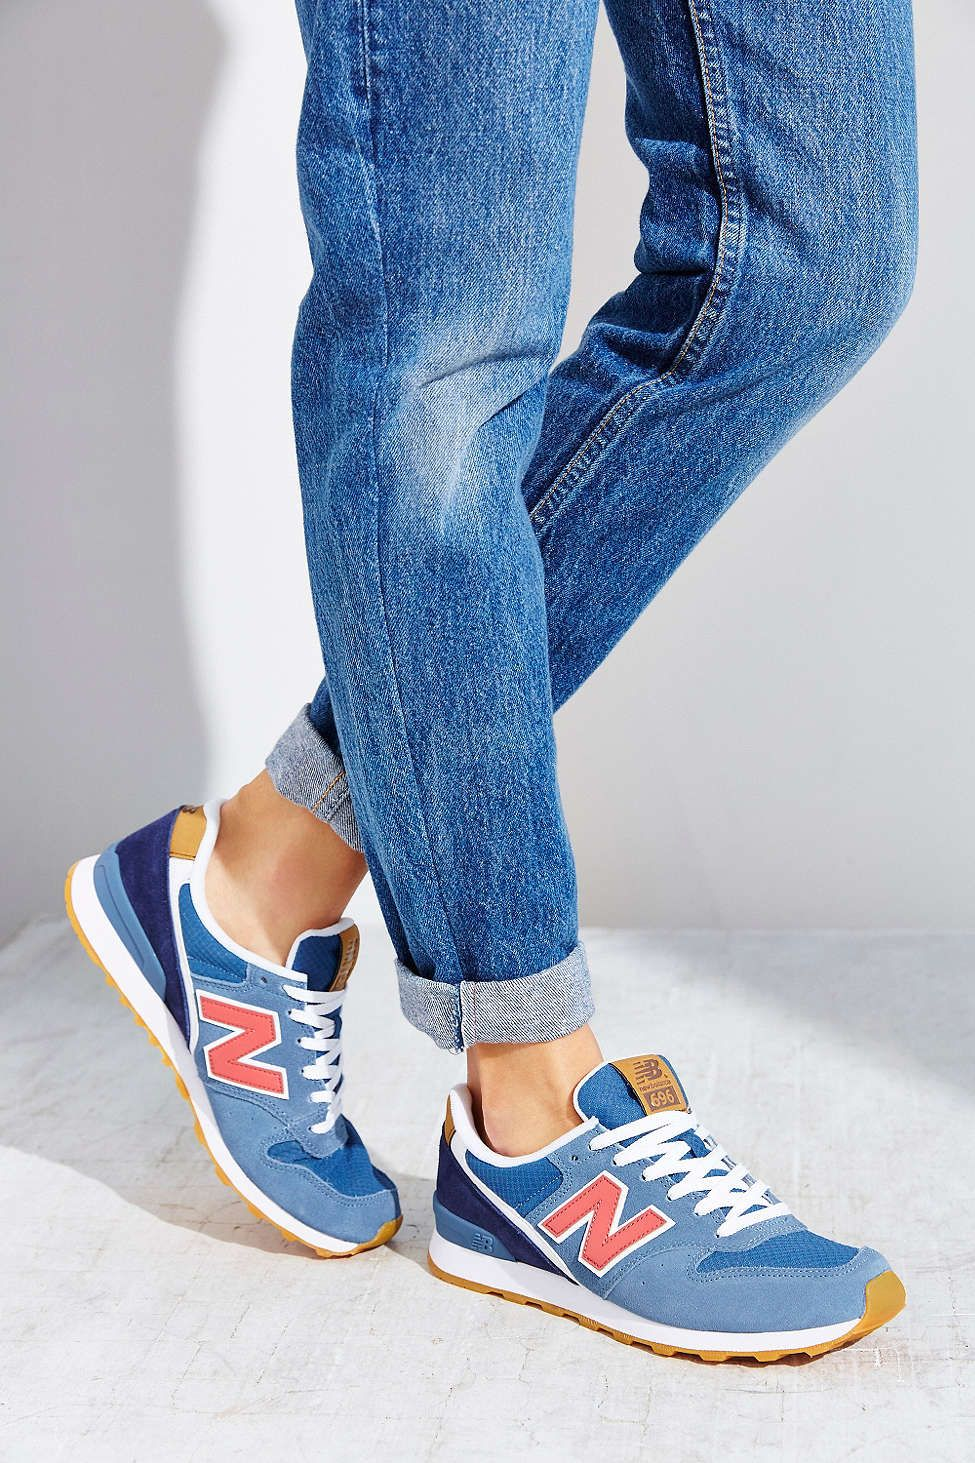 brand new ce43c ab862 New Balance 696 Sneaker - Urban Outfitters